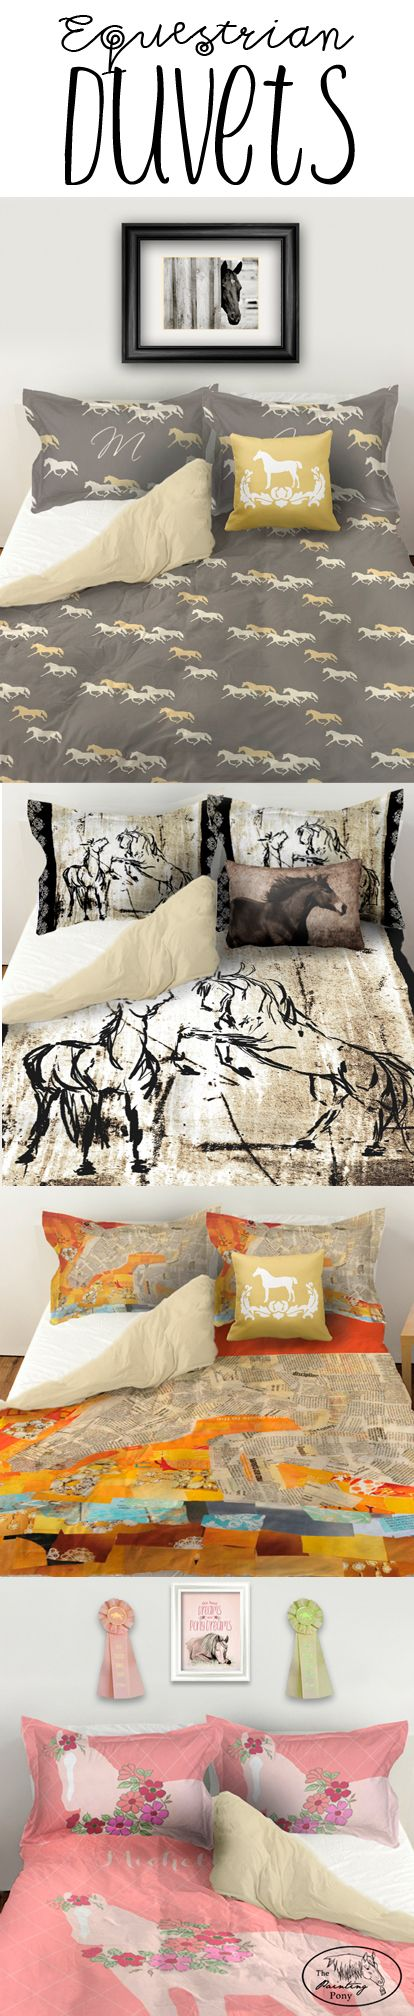 Bedrooms sisters and classy on pinterest for Bedroom ideas for horse lovers